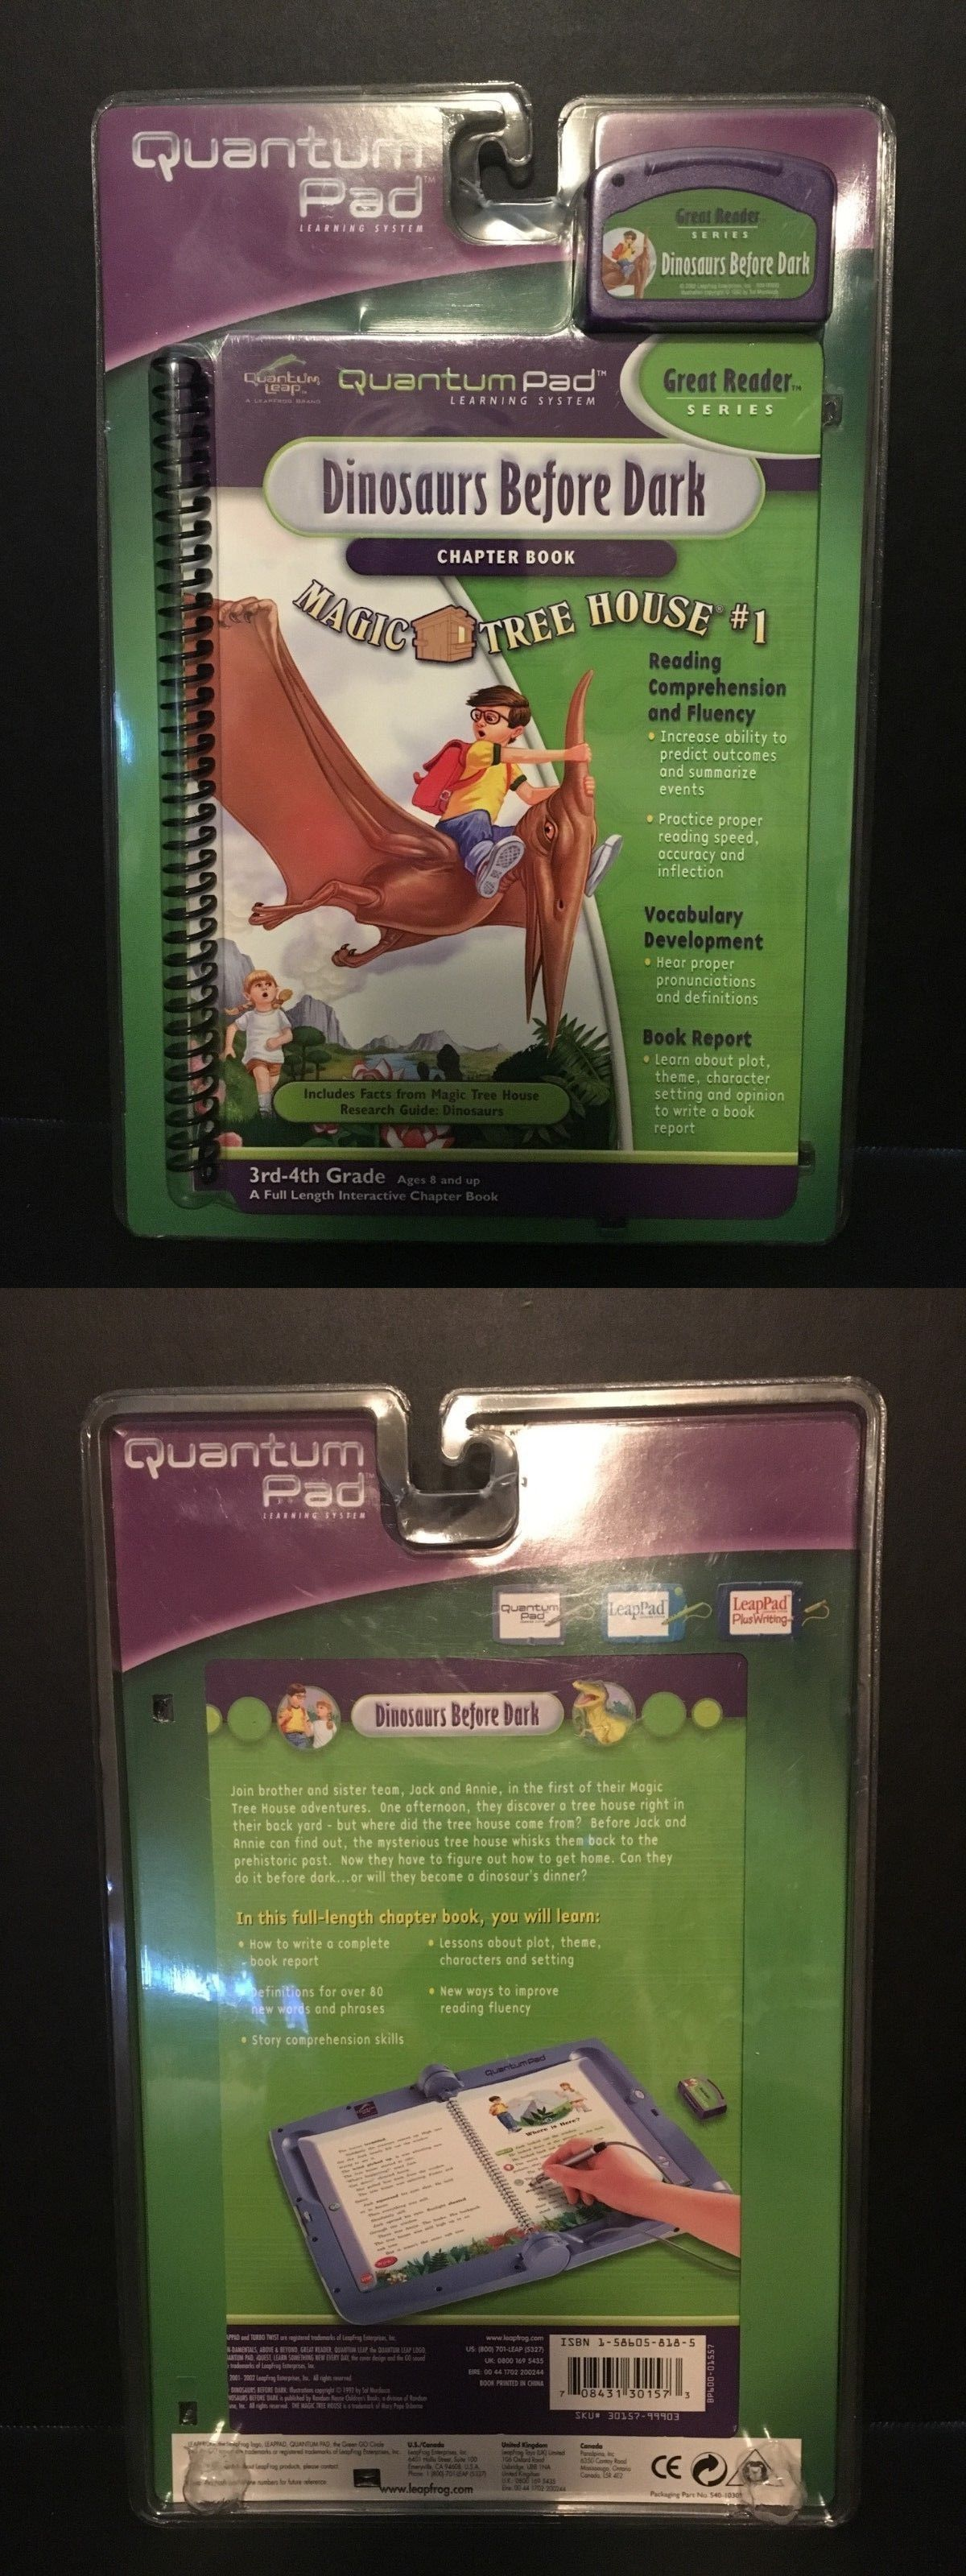 Details About Quantum Leap Pad Game Dinosaurs Before Dark